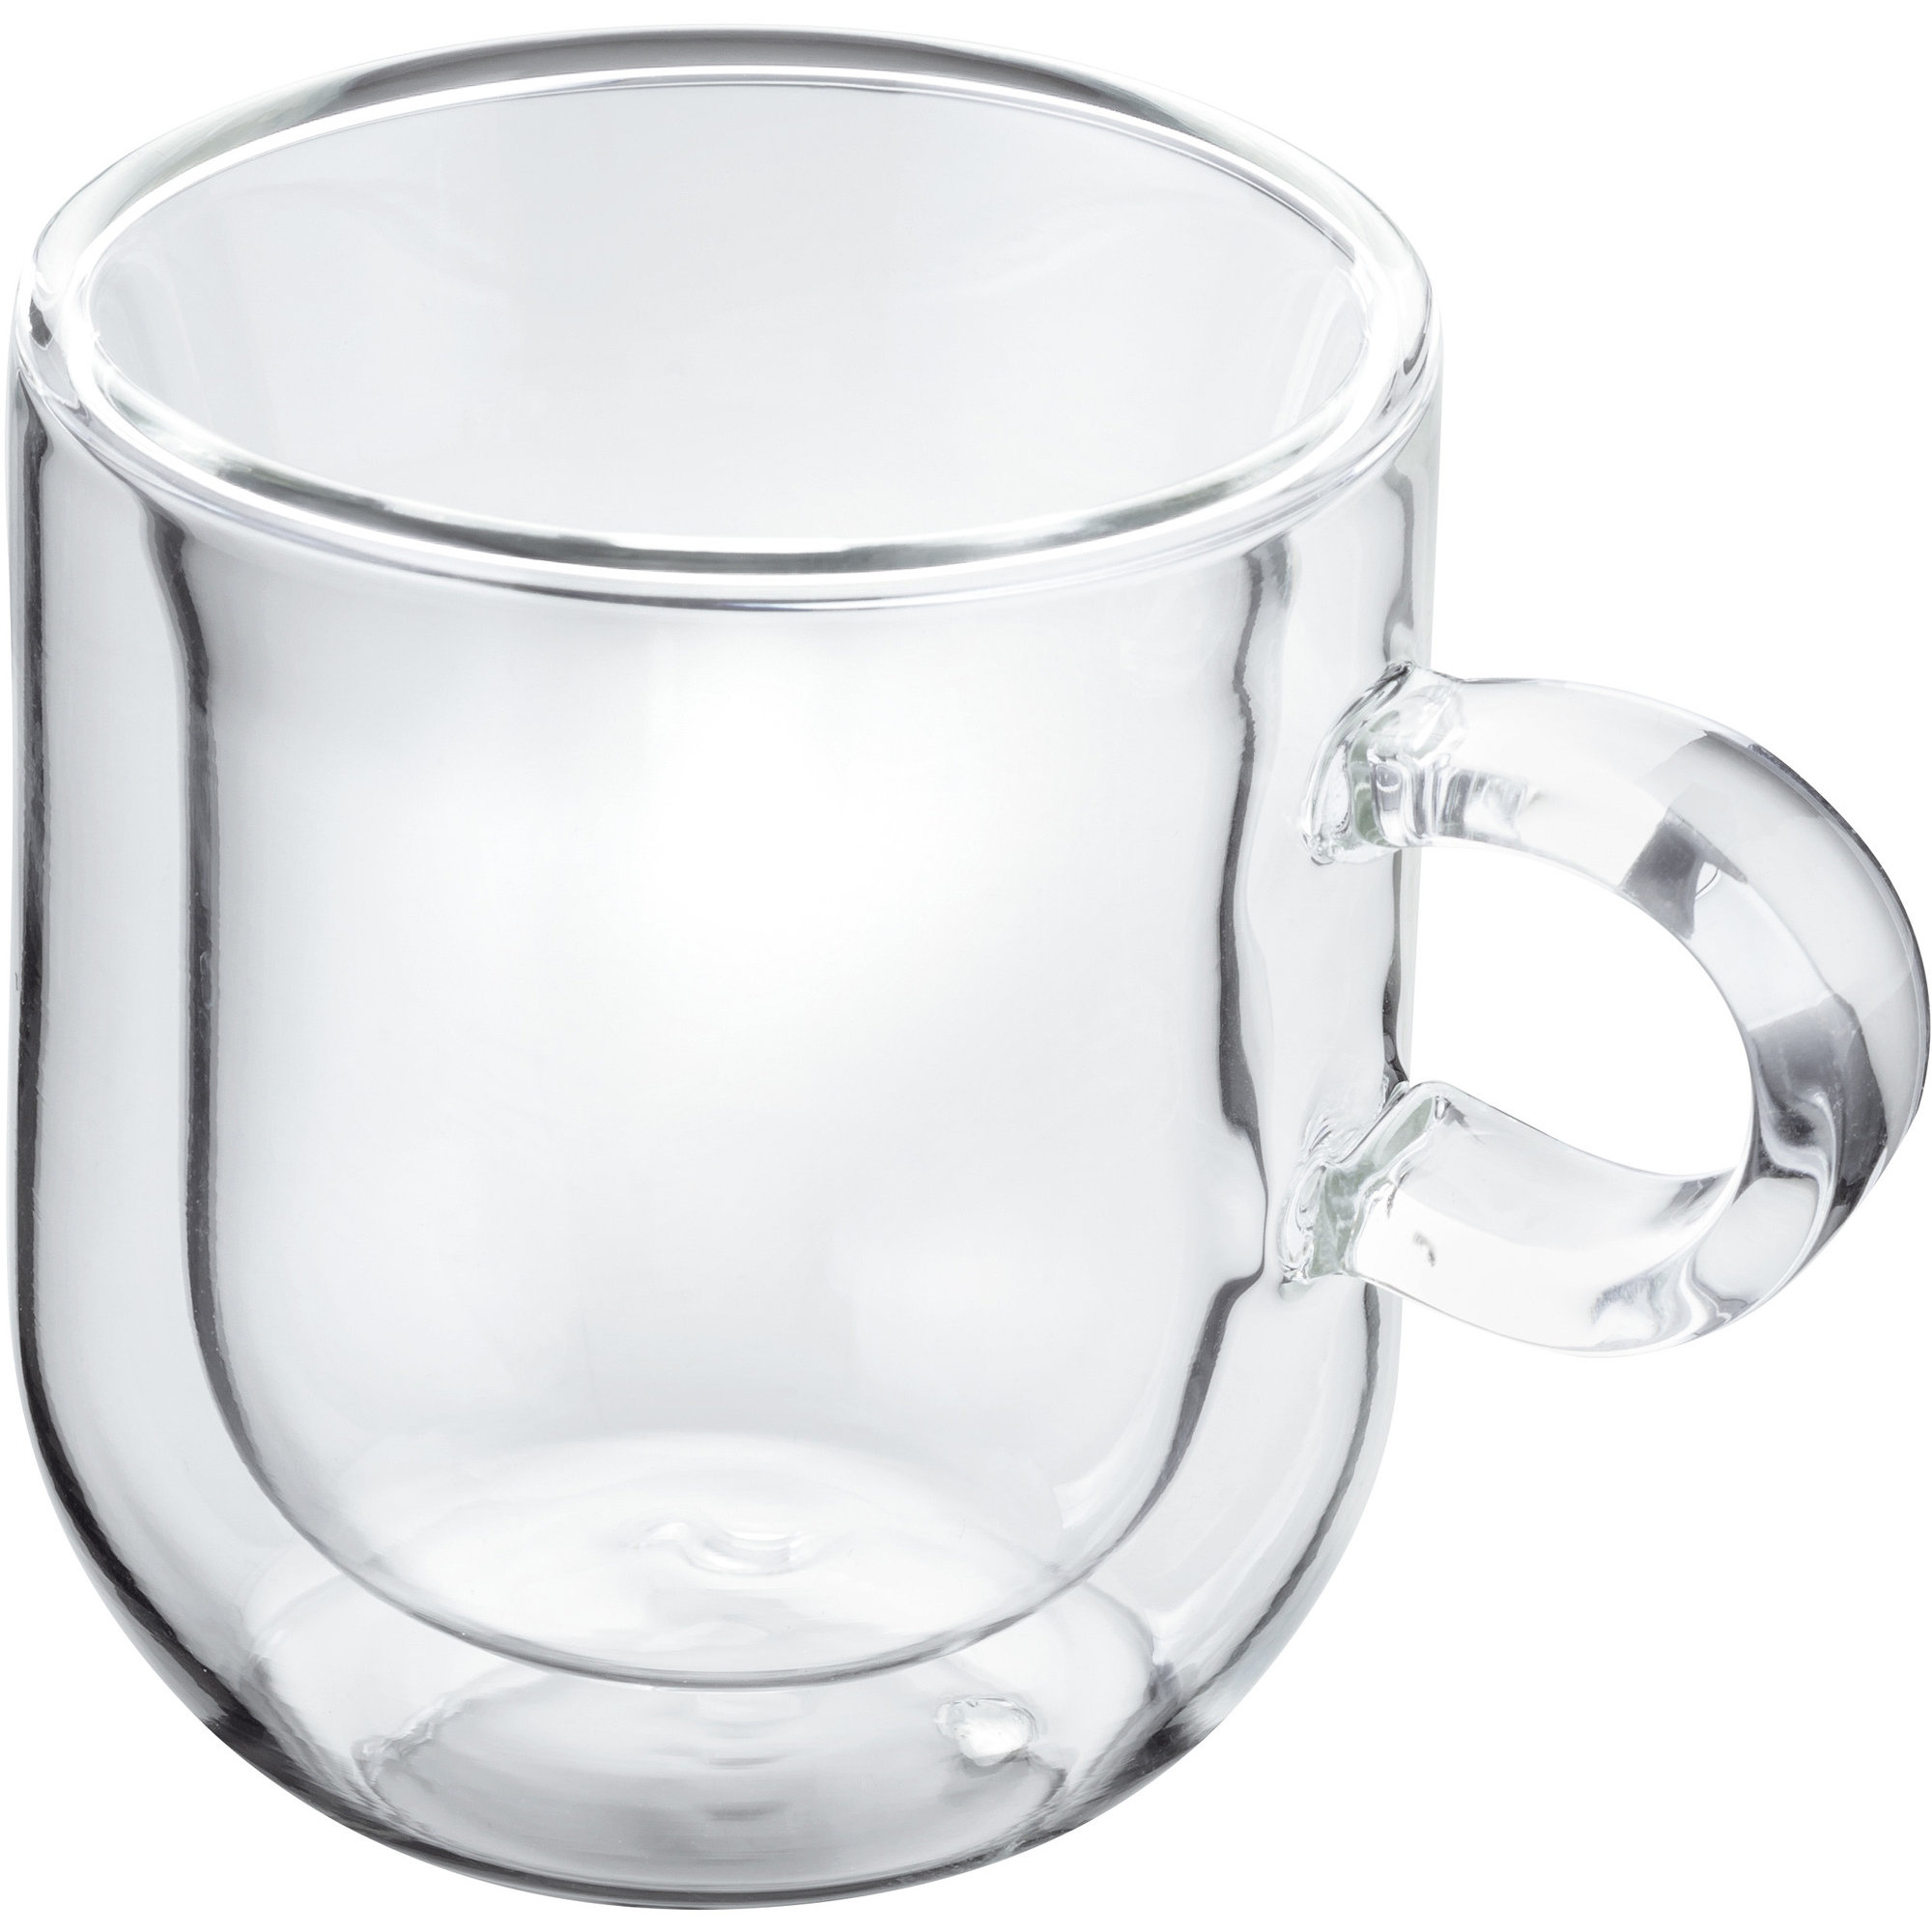 Horwood Glass double wall Espresso set of 2 75ml